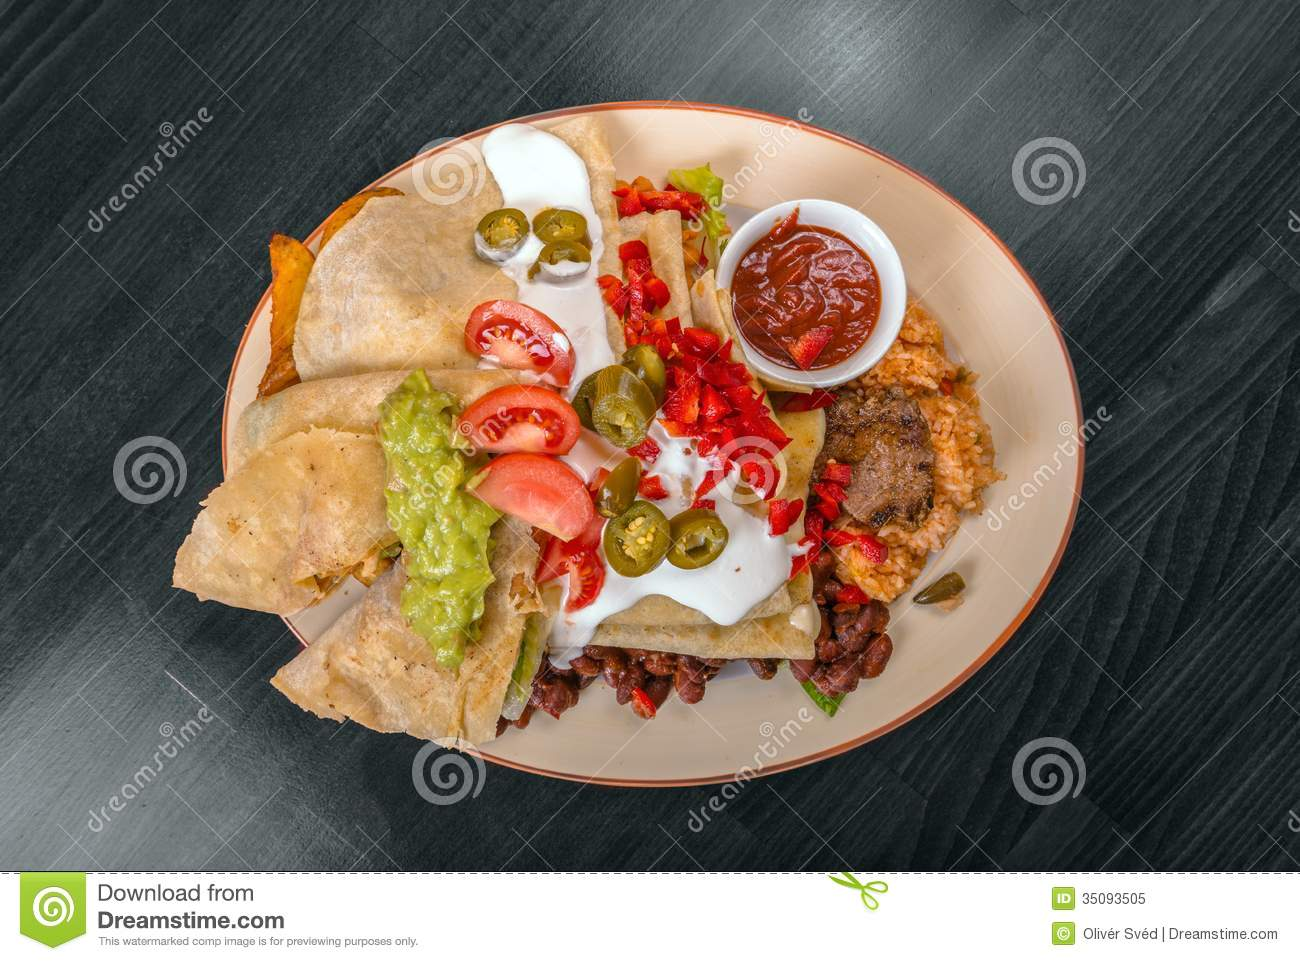 Delicious Mexican Food On A Plate Royalty Free Stock Photo ...